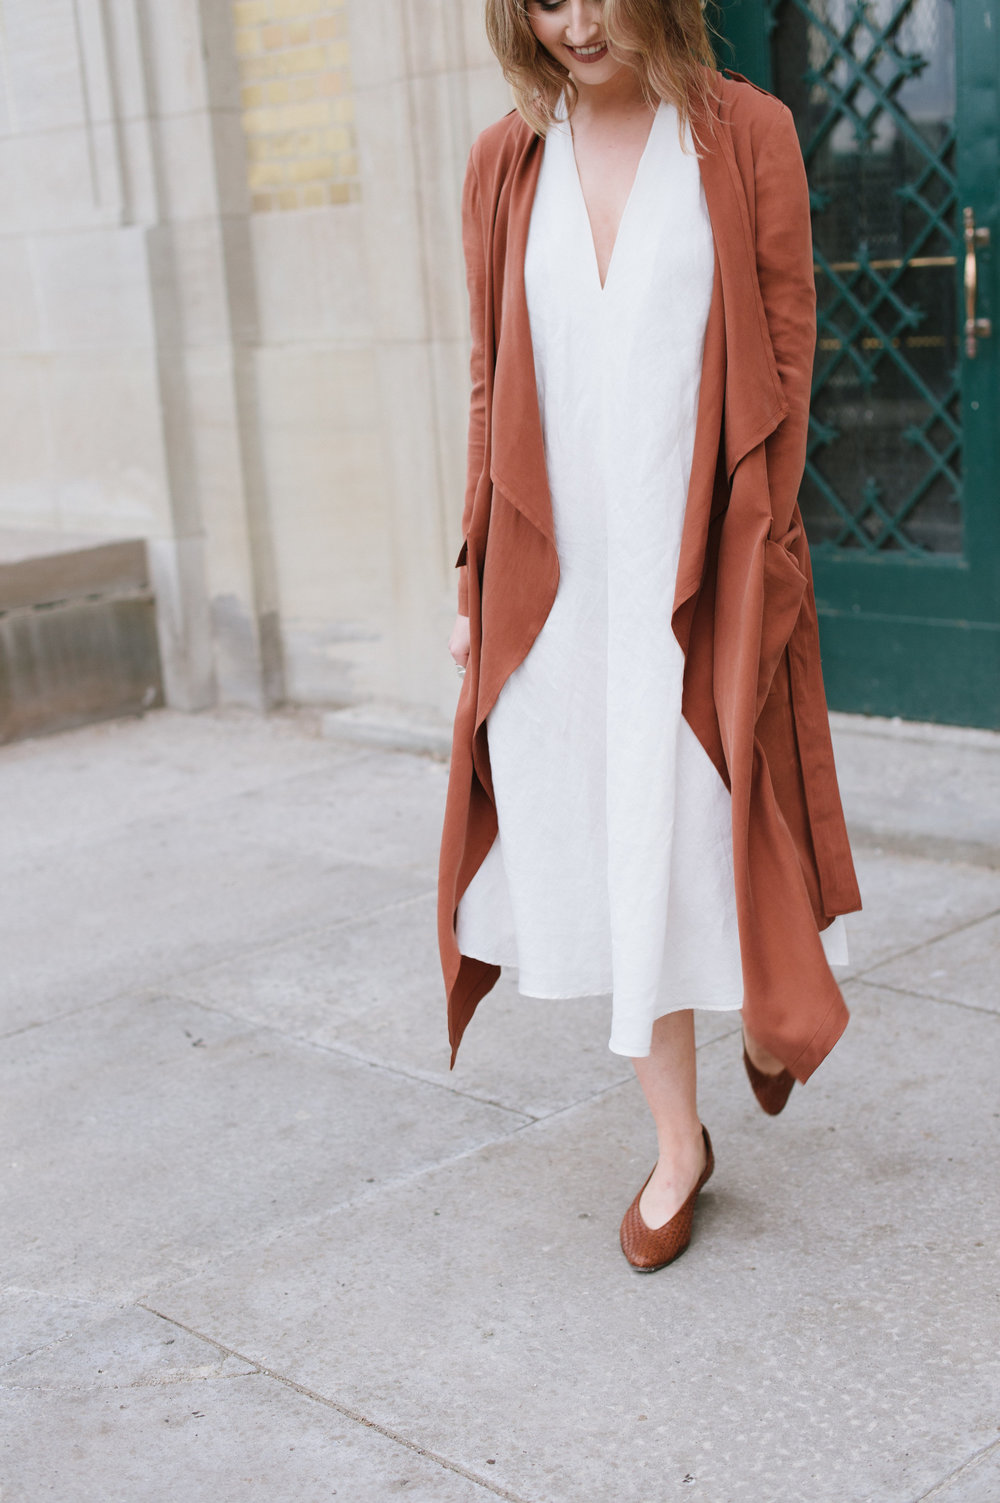 Celine Kim Photography Victory Patterns fashion photography trench coat Toronto5.jpg